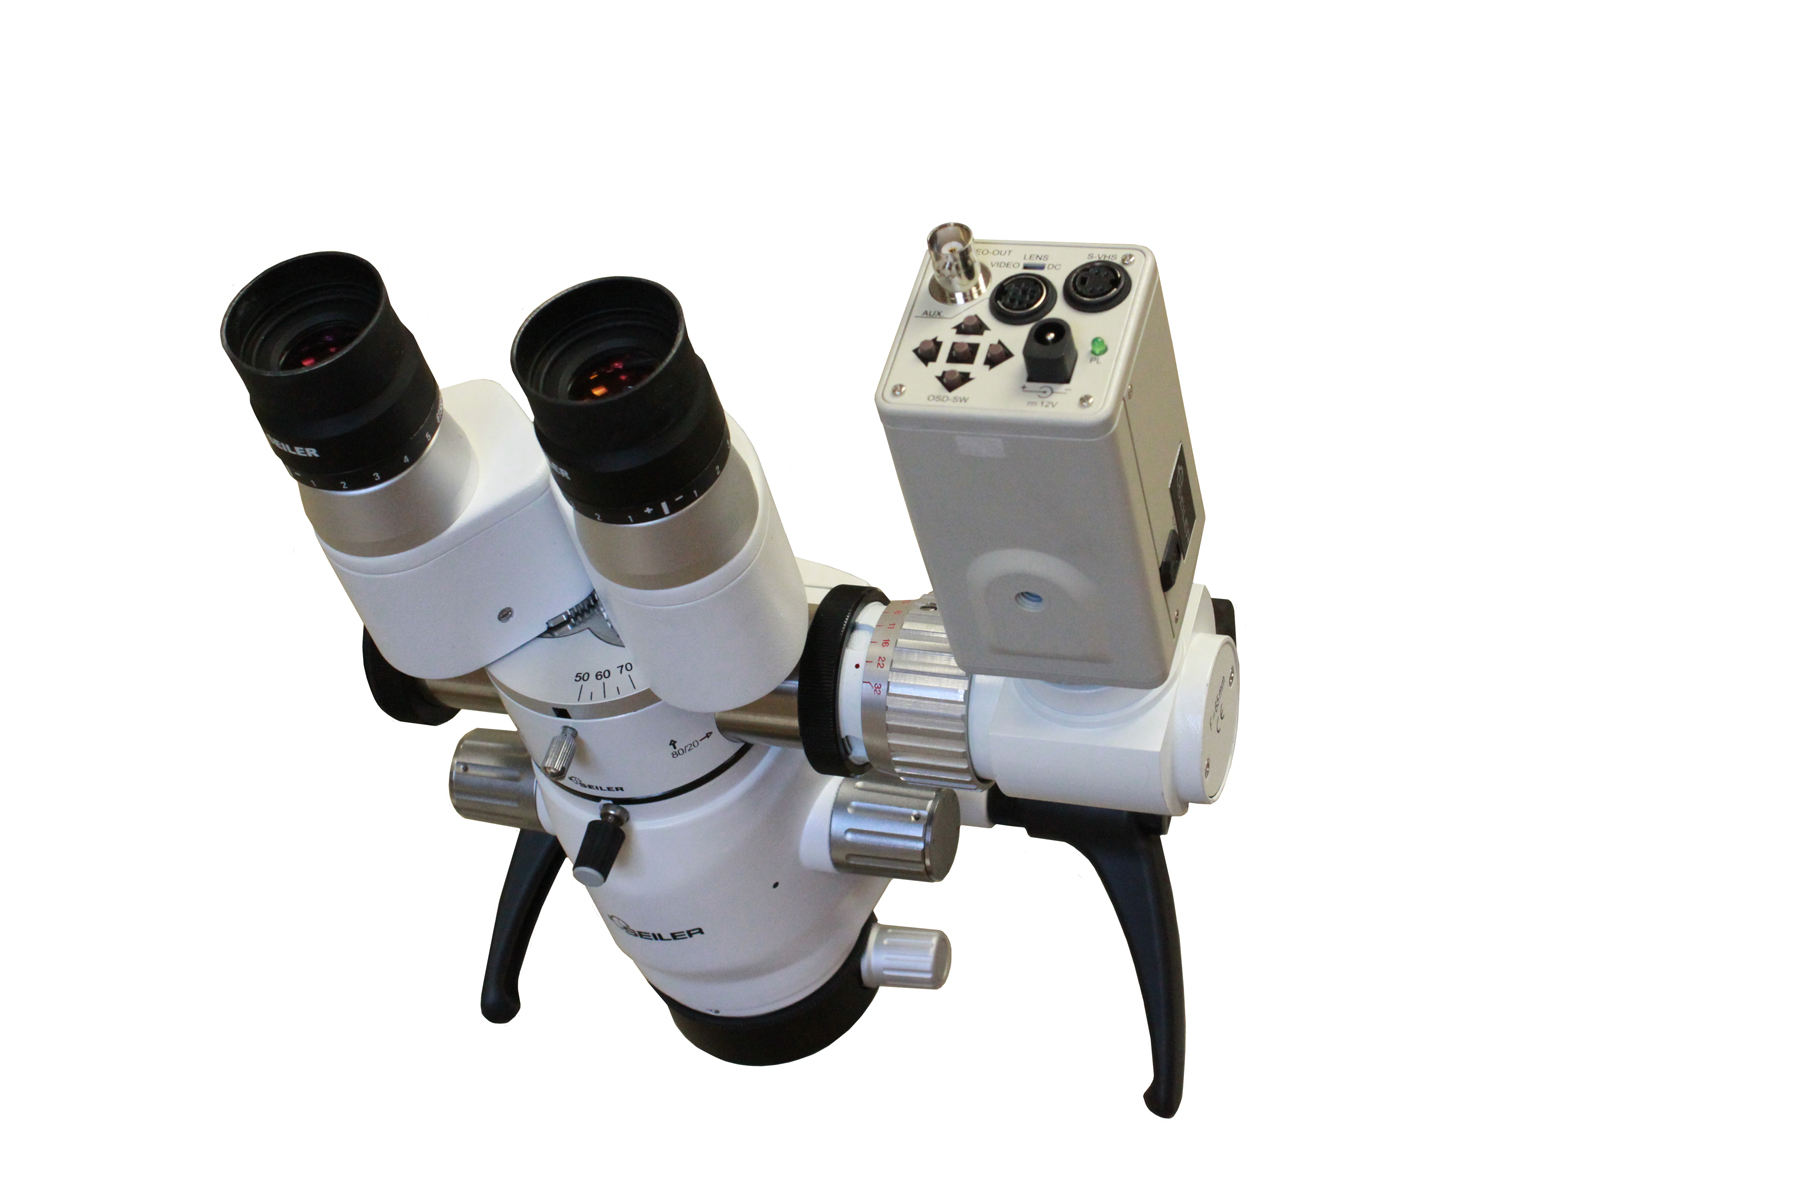 ENT head with CCD Camera